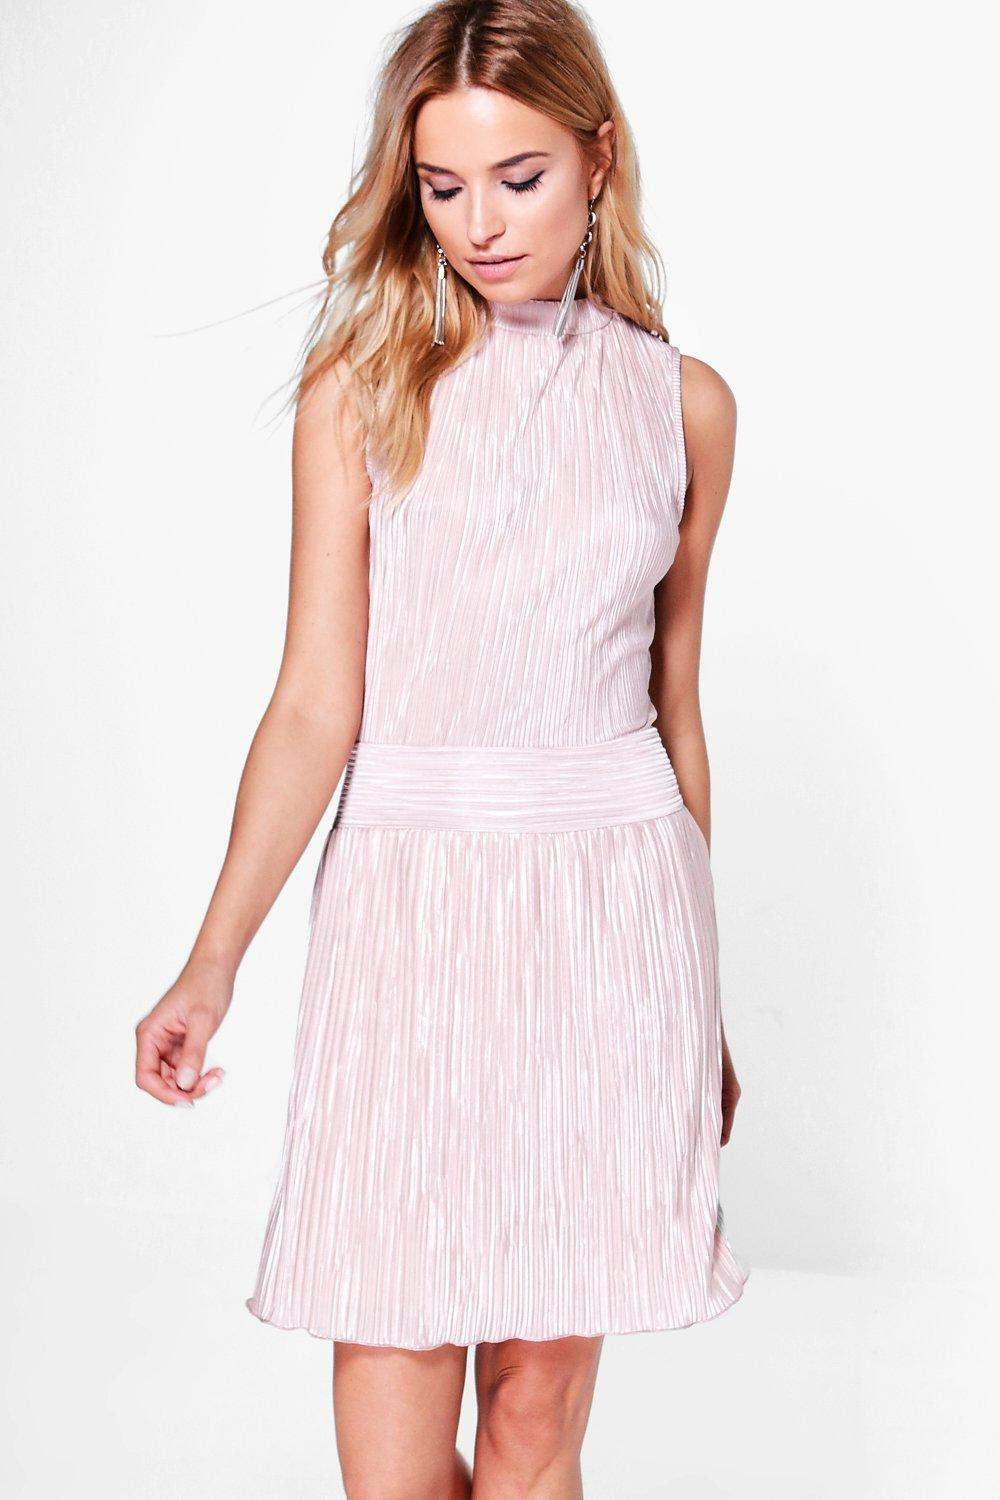 Tilda High Neck Pleated Skater Dress